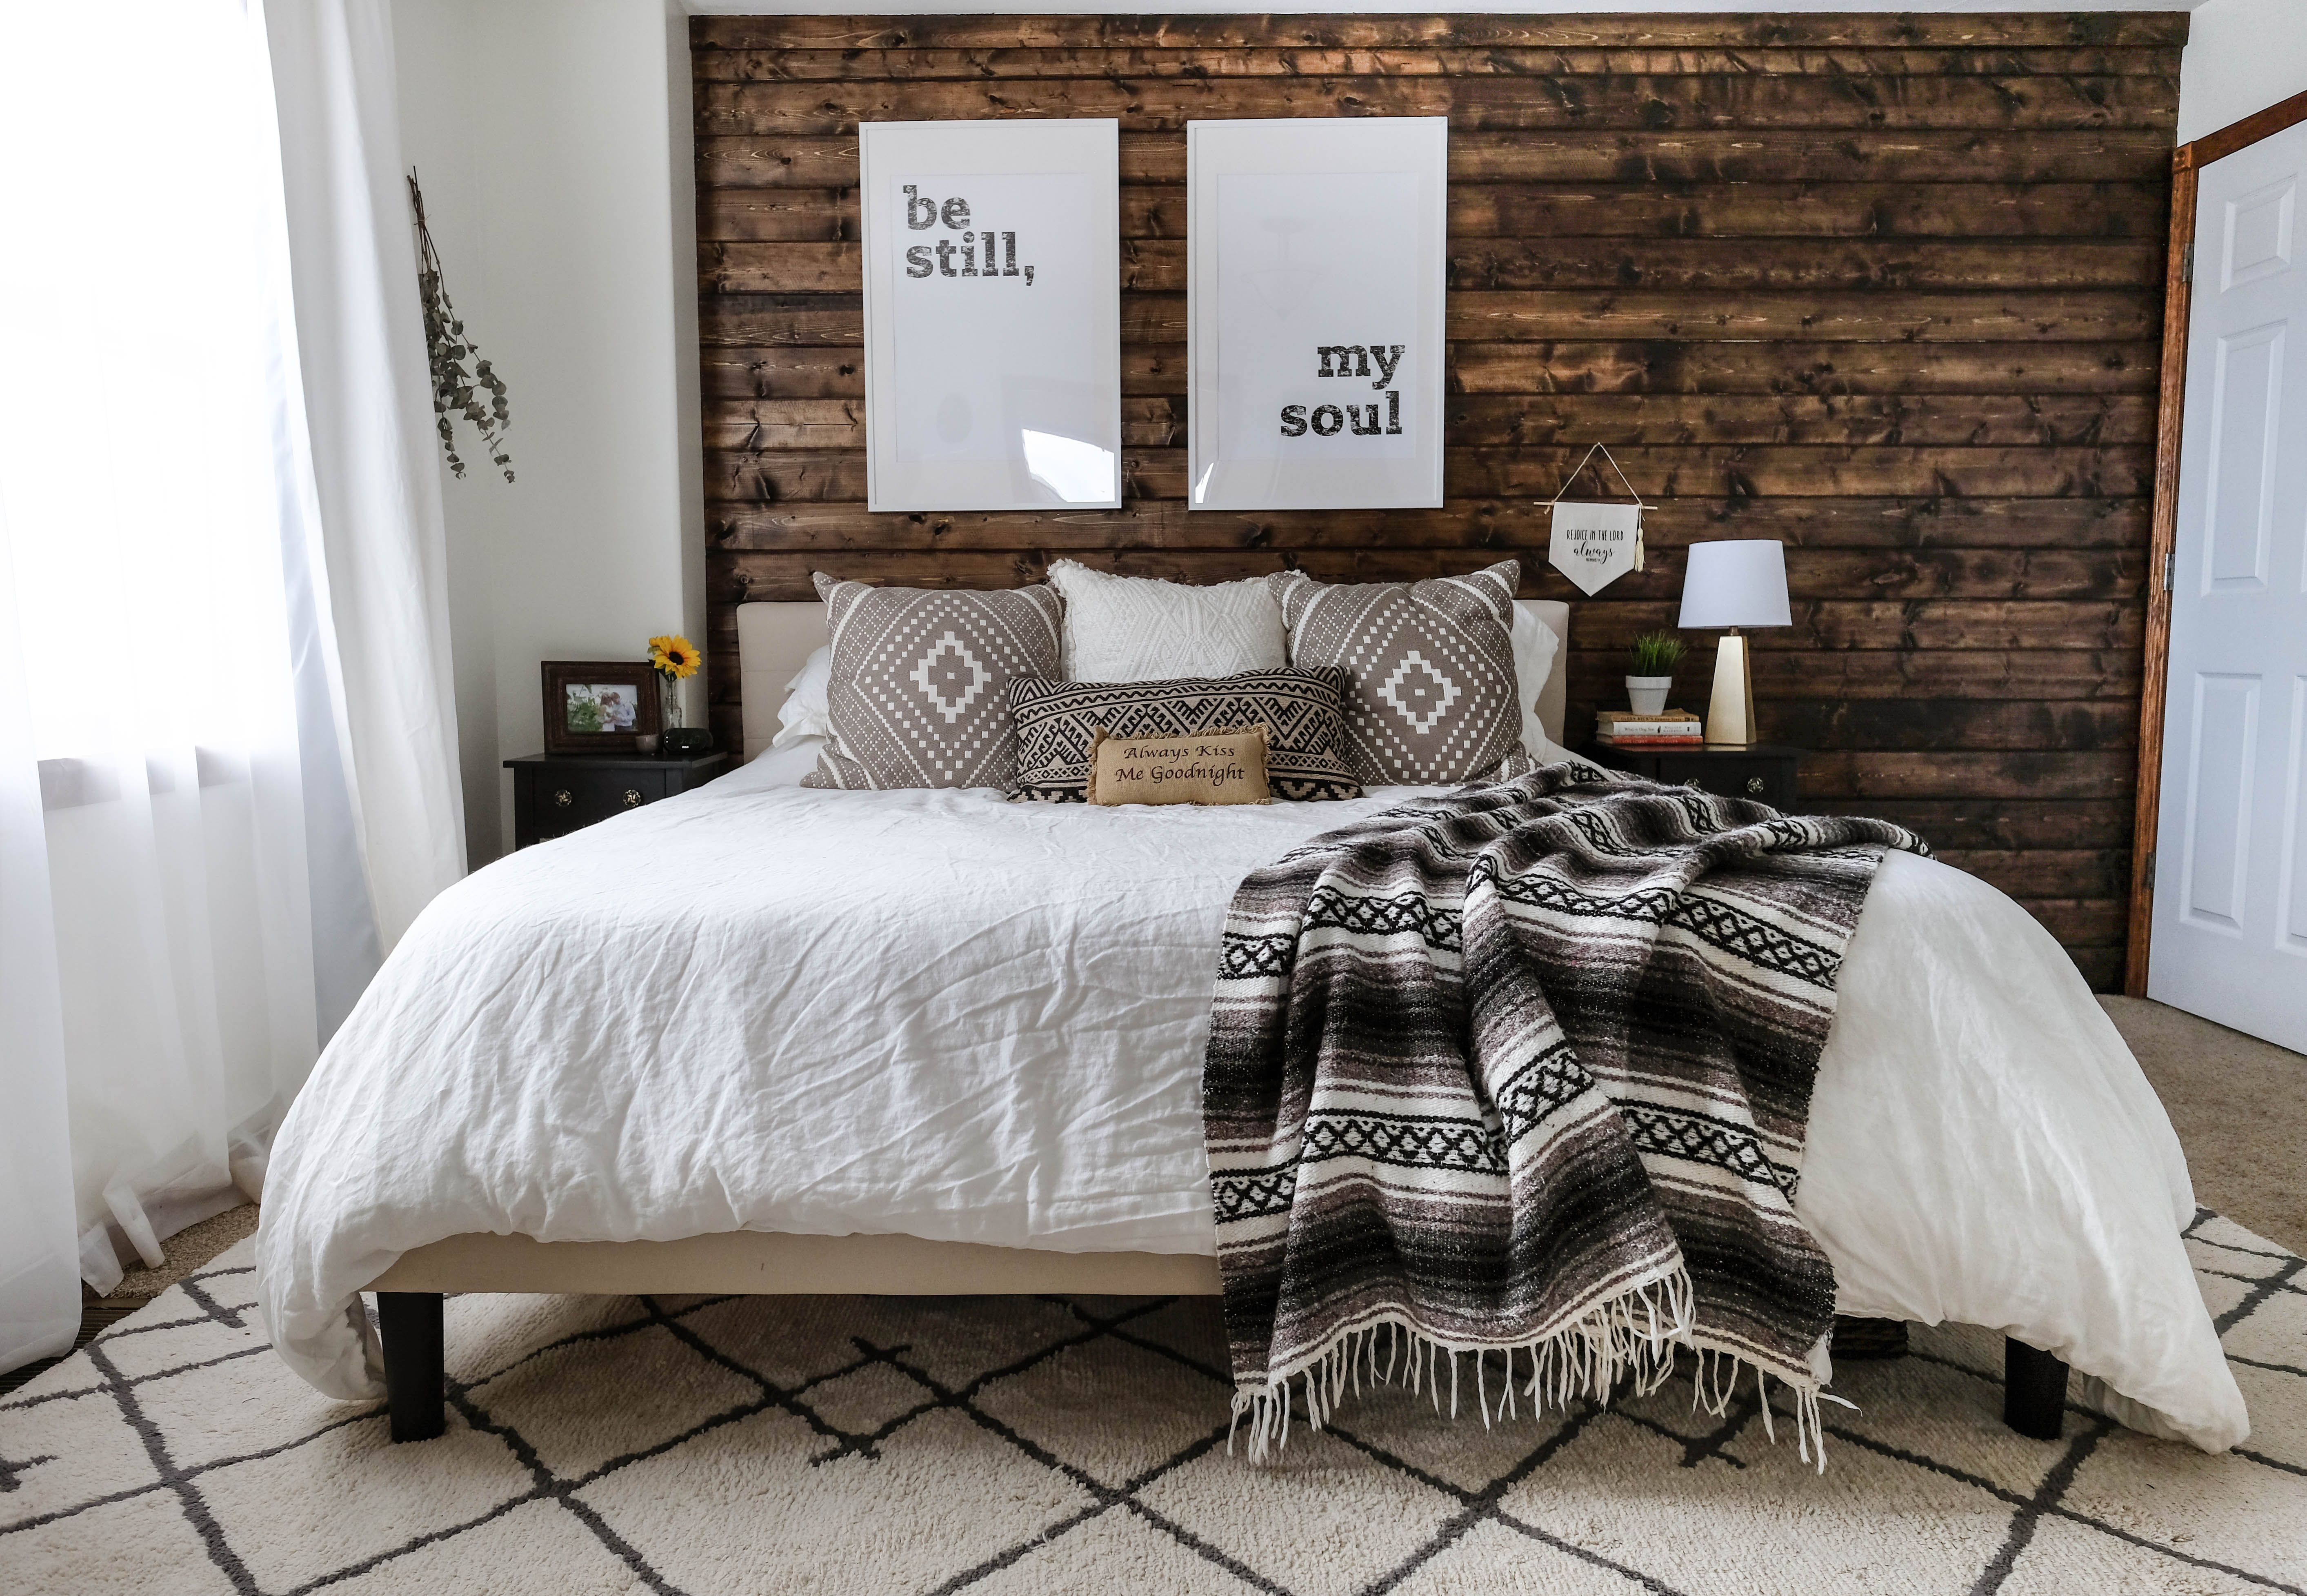 How To Build A Wood Plank Accent Wall Rustic Bedroom Decor Rustic Bedroom Modern Rustic Bedrooms